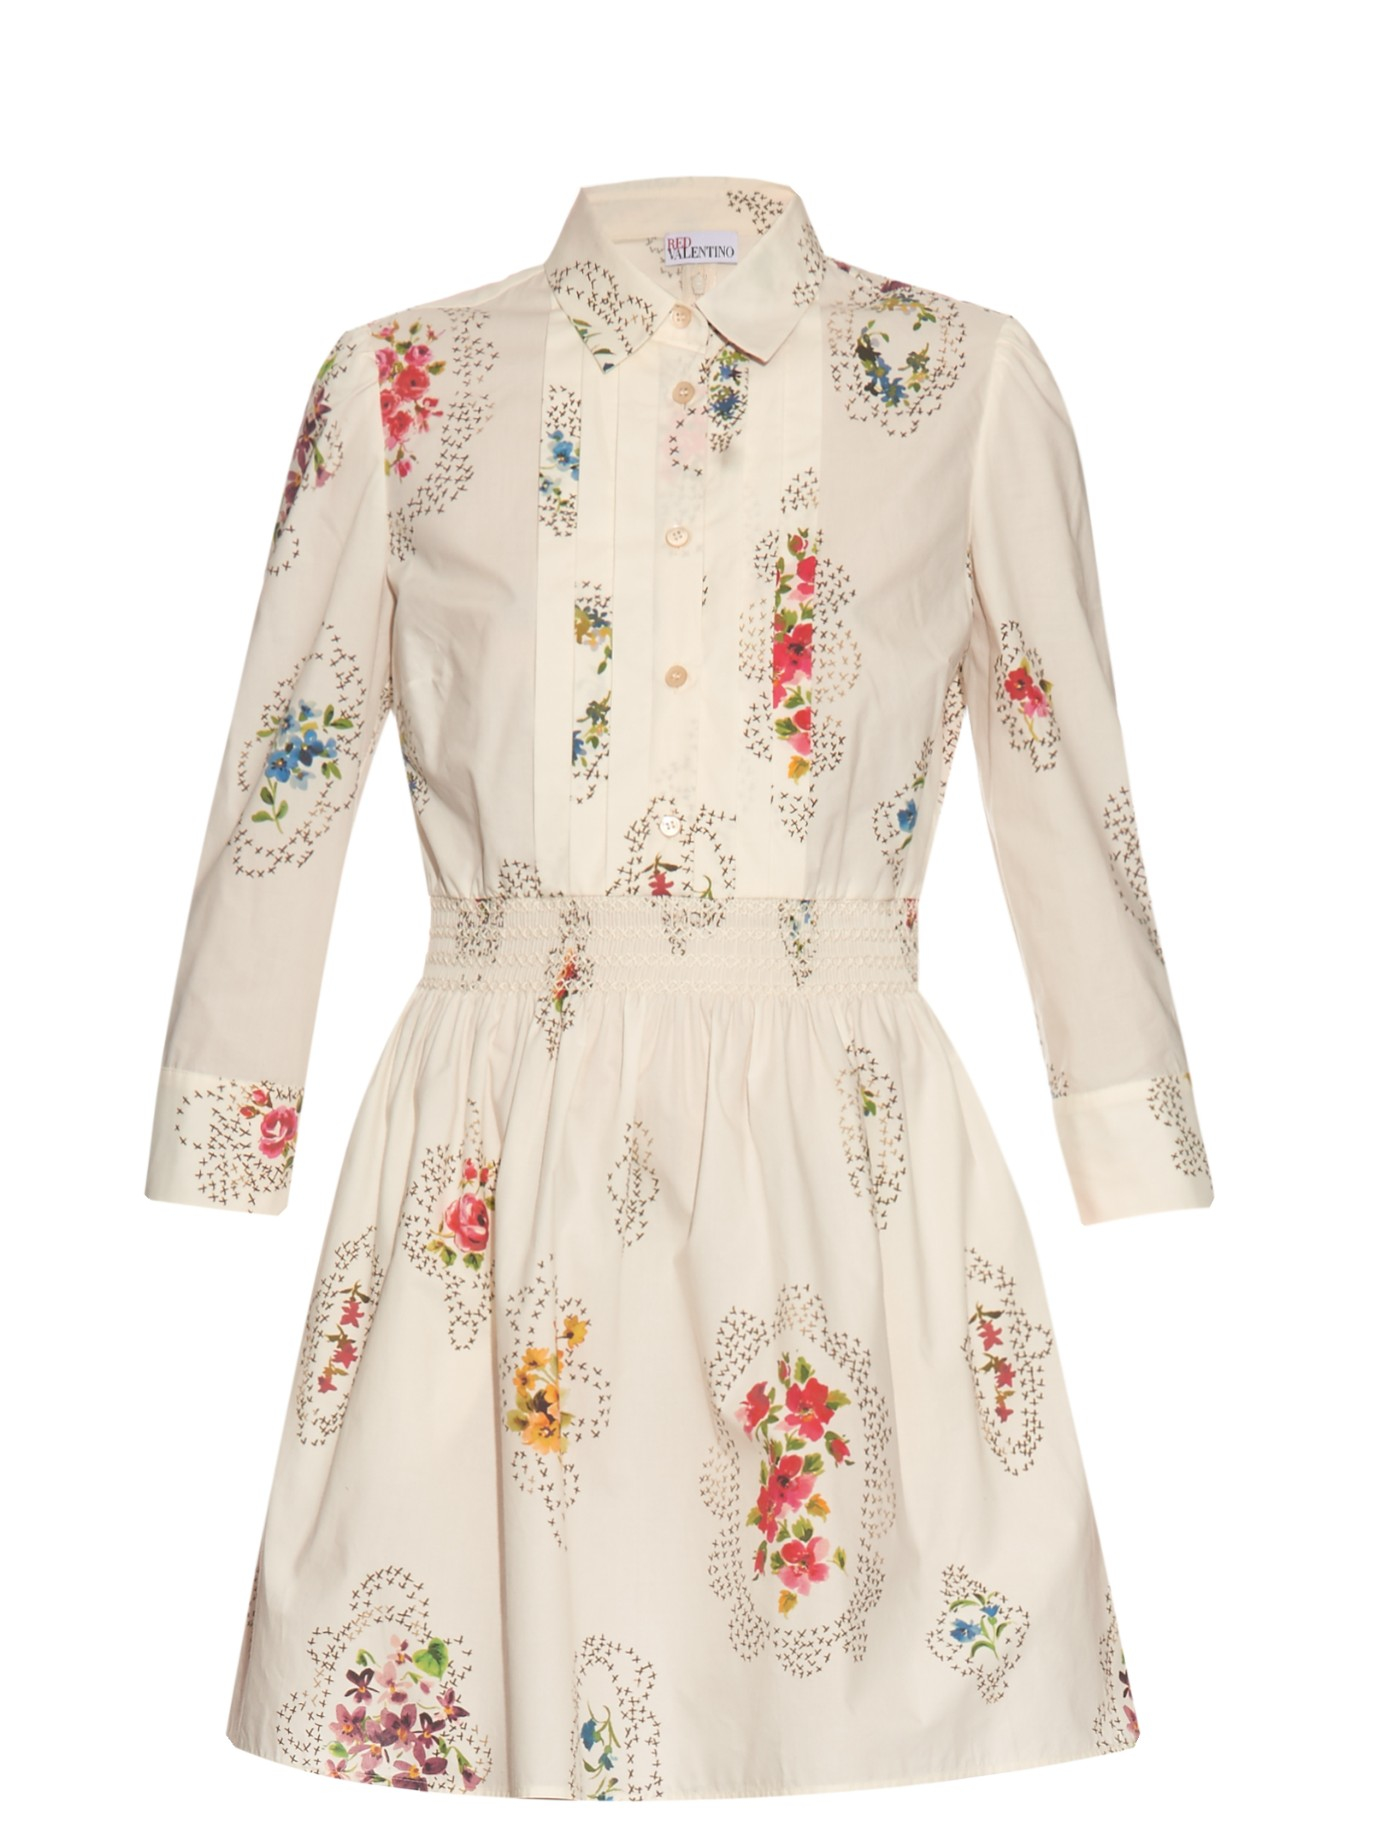 Botanico printed dress Red Valentino Outlet Sneakernews Fashionable Cheap Online Brand New Unisex Online Classic For Sale ibLiqqe